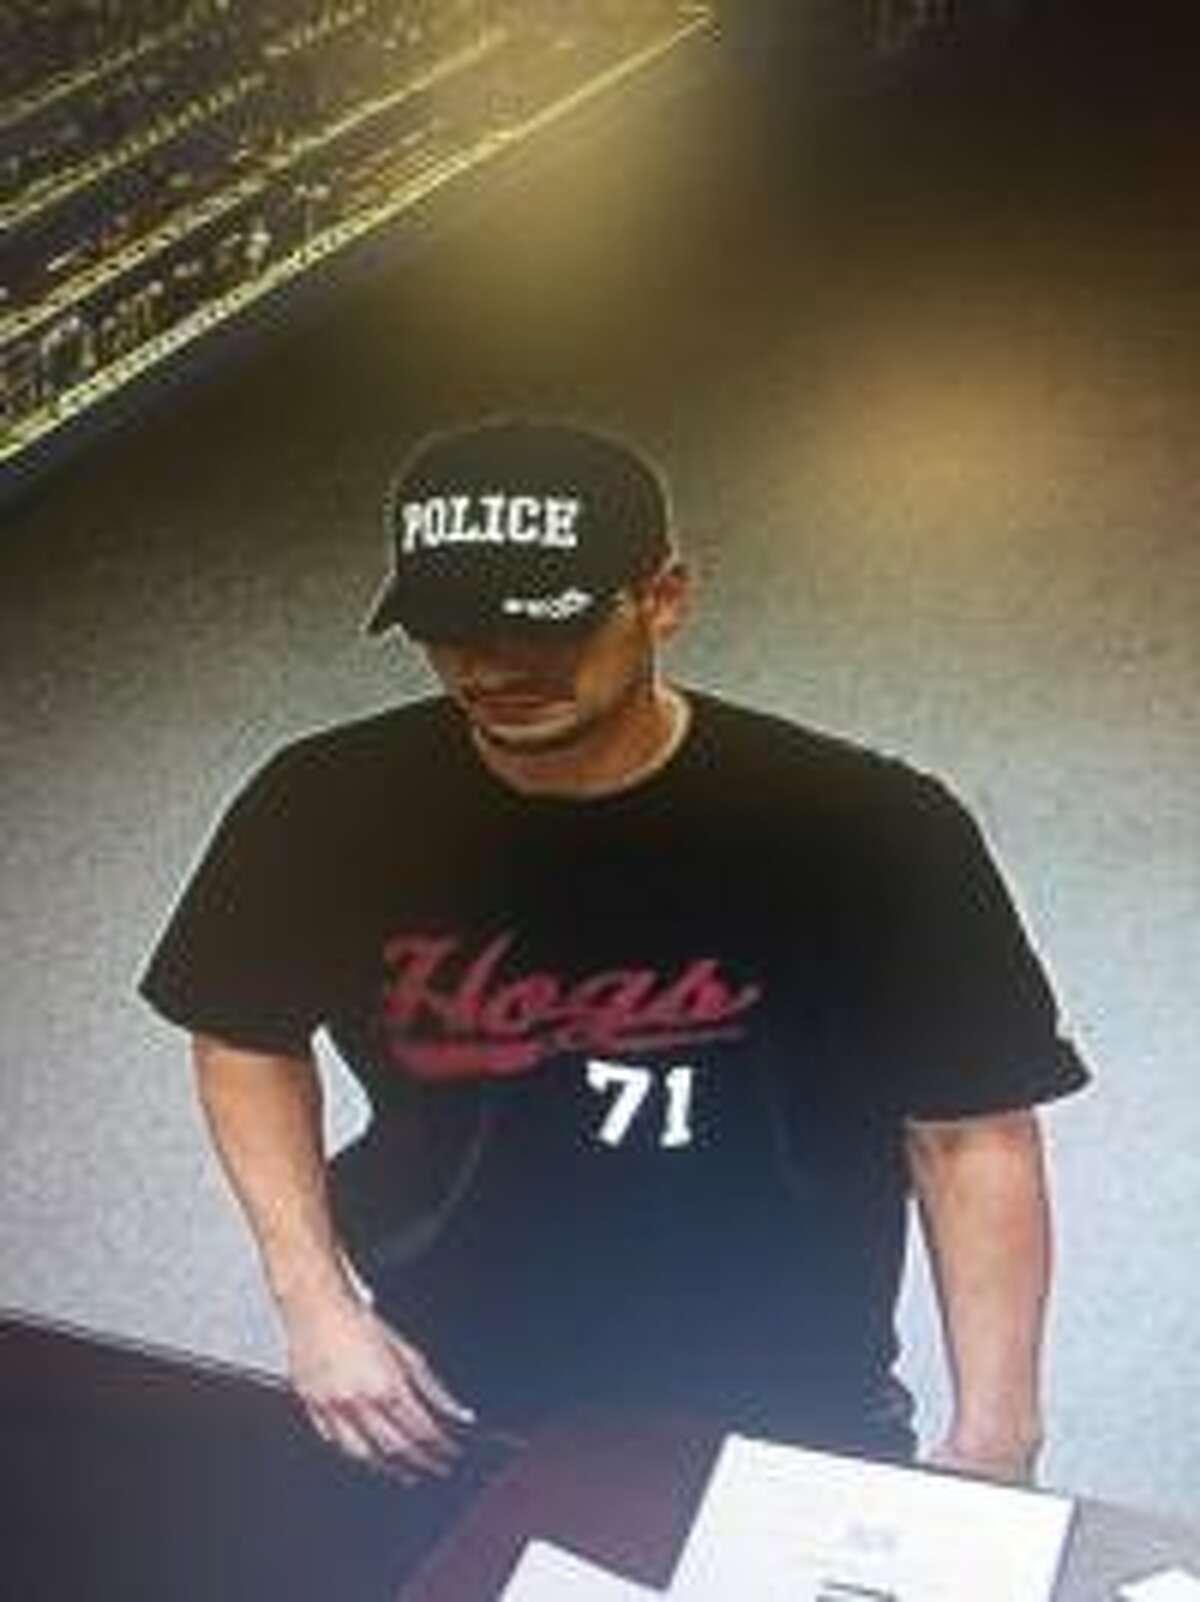 The Friendswood Police Department is searching for the man responsible for the Sept. 28 armed robbery of Edgewood Pharmacy, 120 S. Friendswood Drive. Anyone with information is asked to call 281-996-3300.